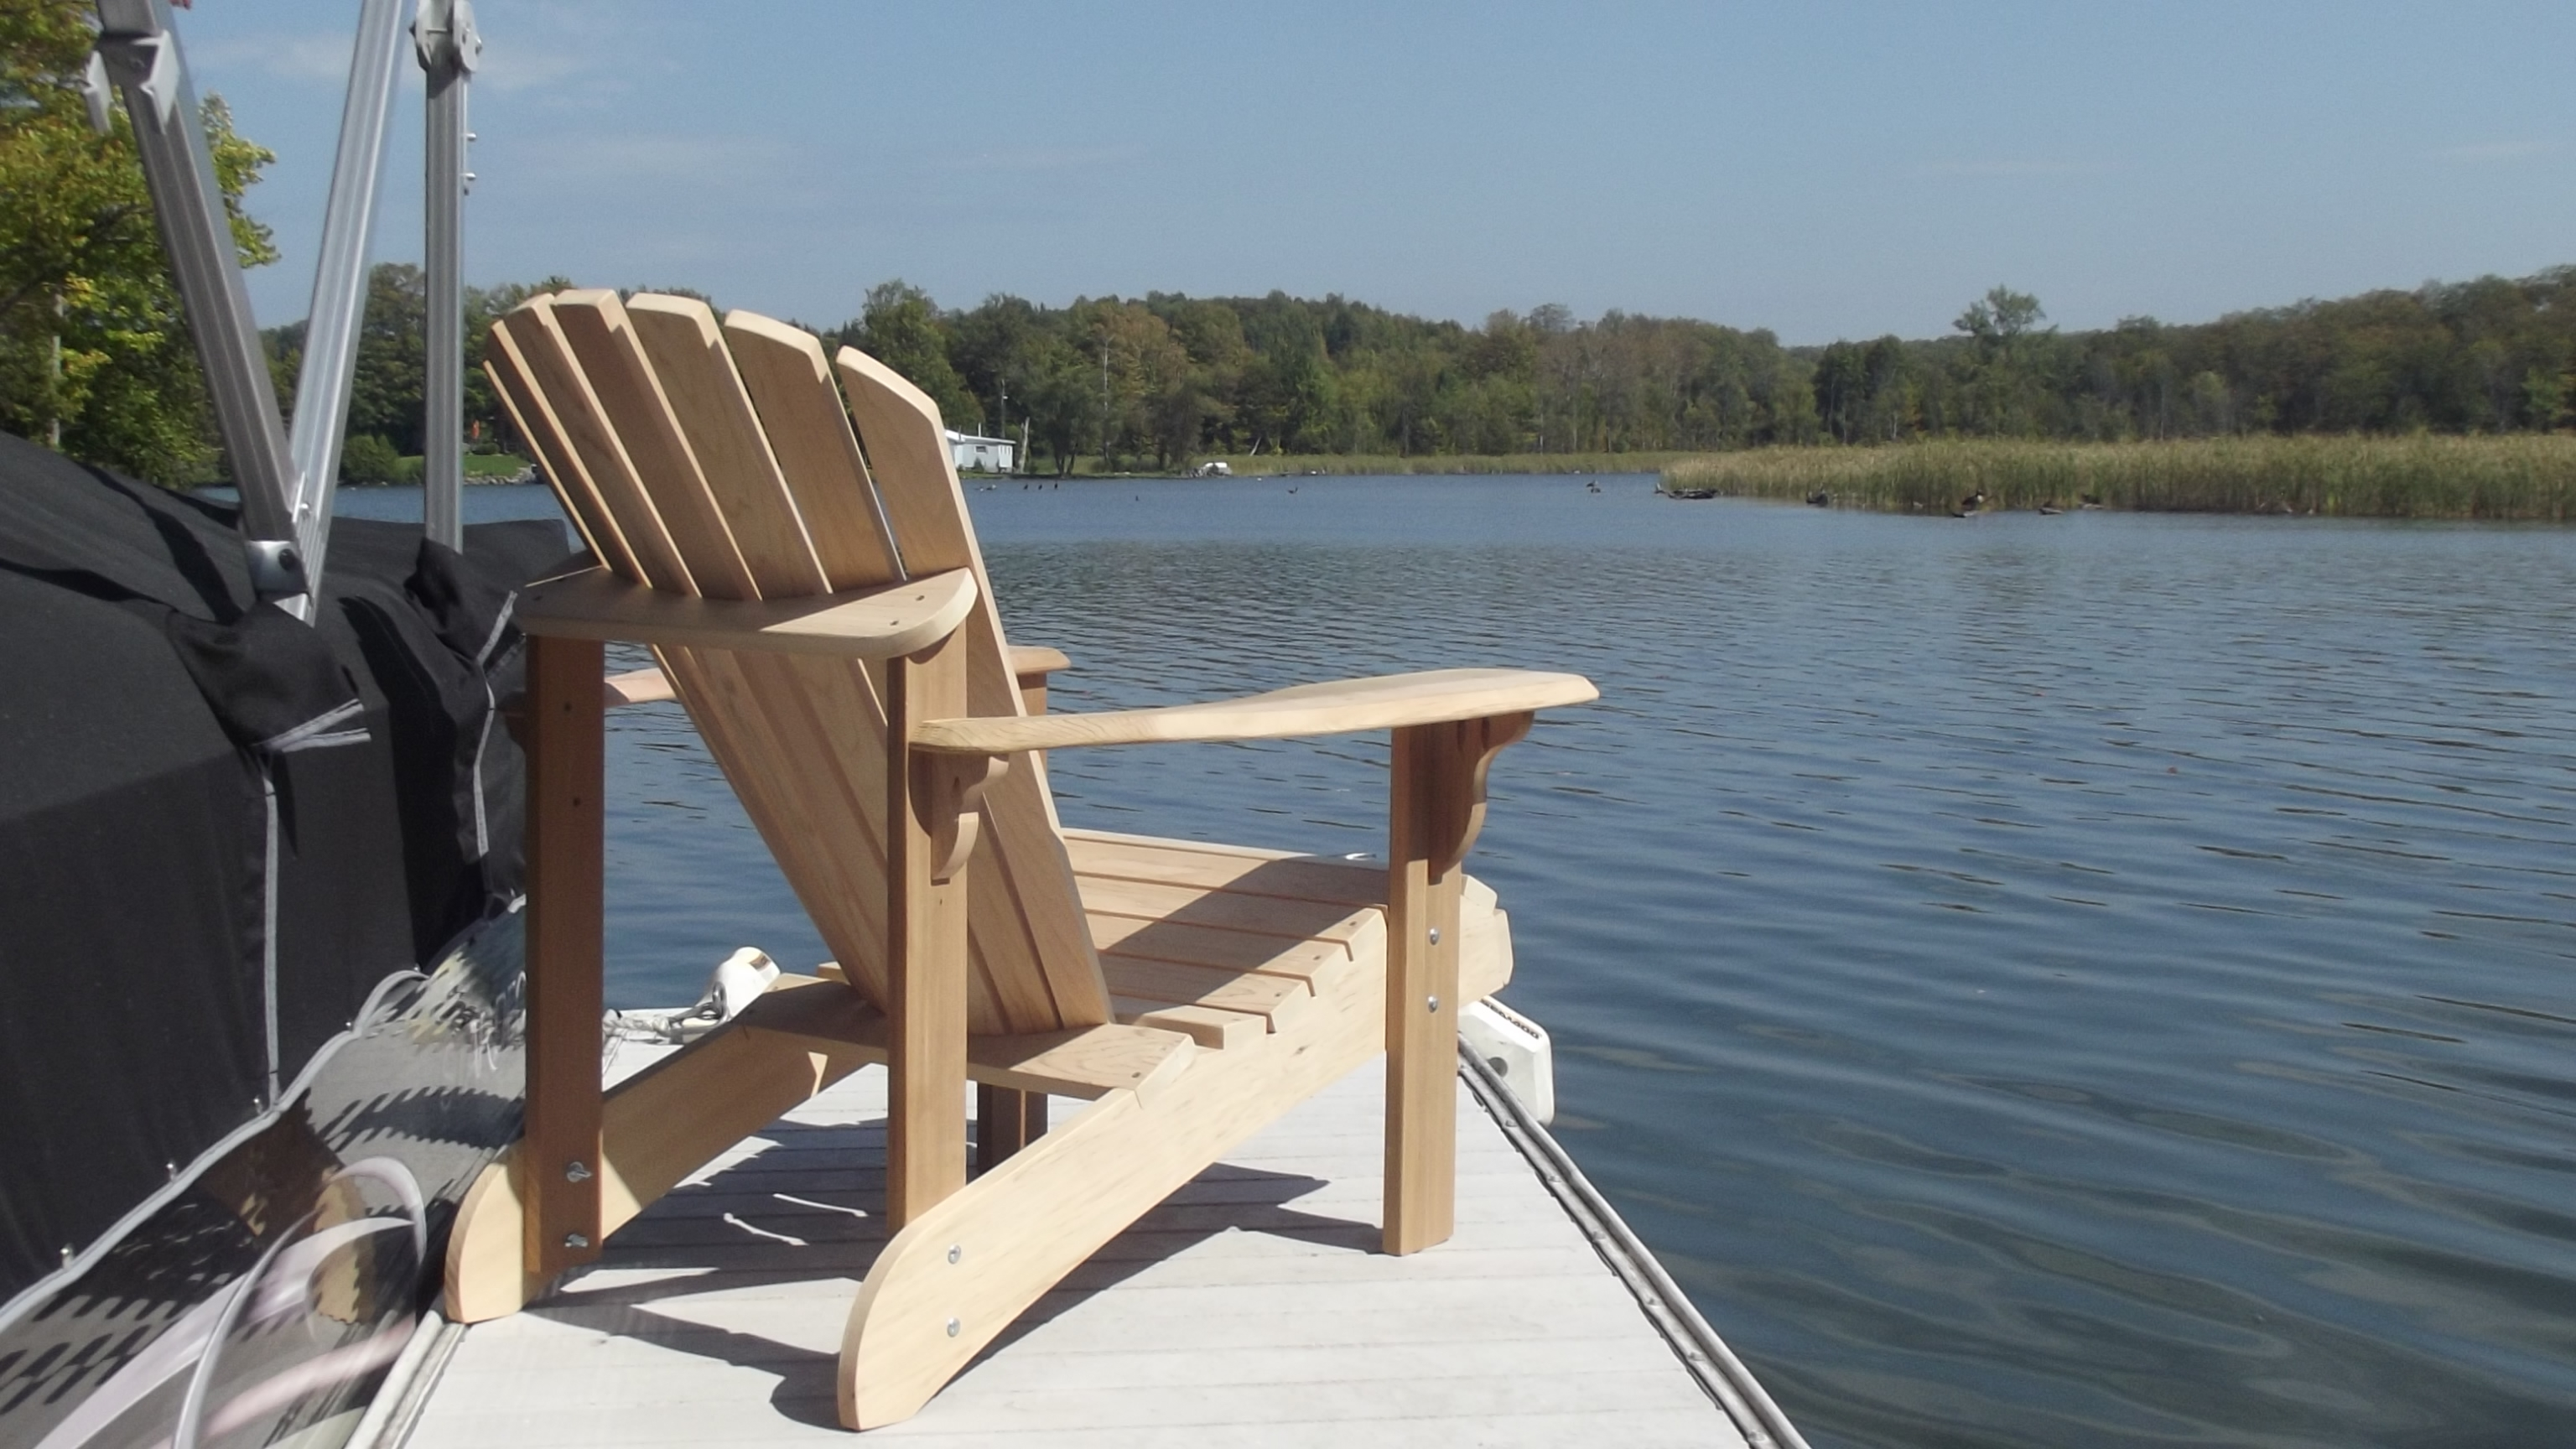 Quick Pool Pflege Muskoka Classic Chair Deluxe - Canadian Lifestyle